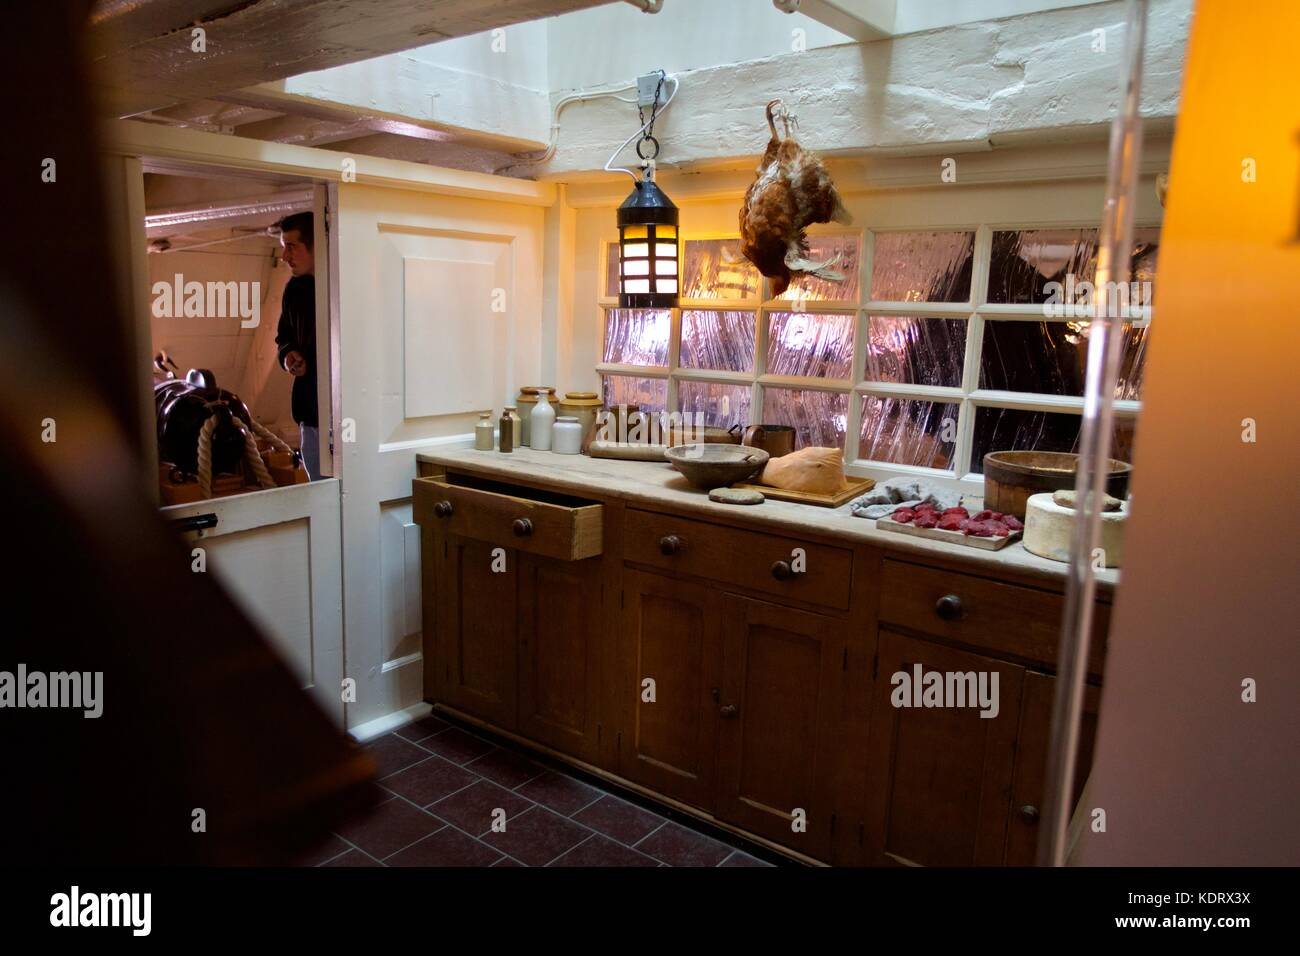 The Galley on HMS Victory, Portsmouth Historic Dockyard - Stock Image